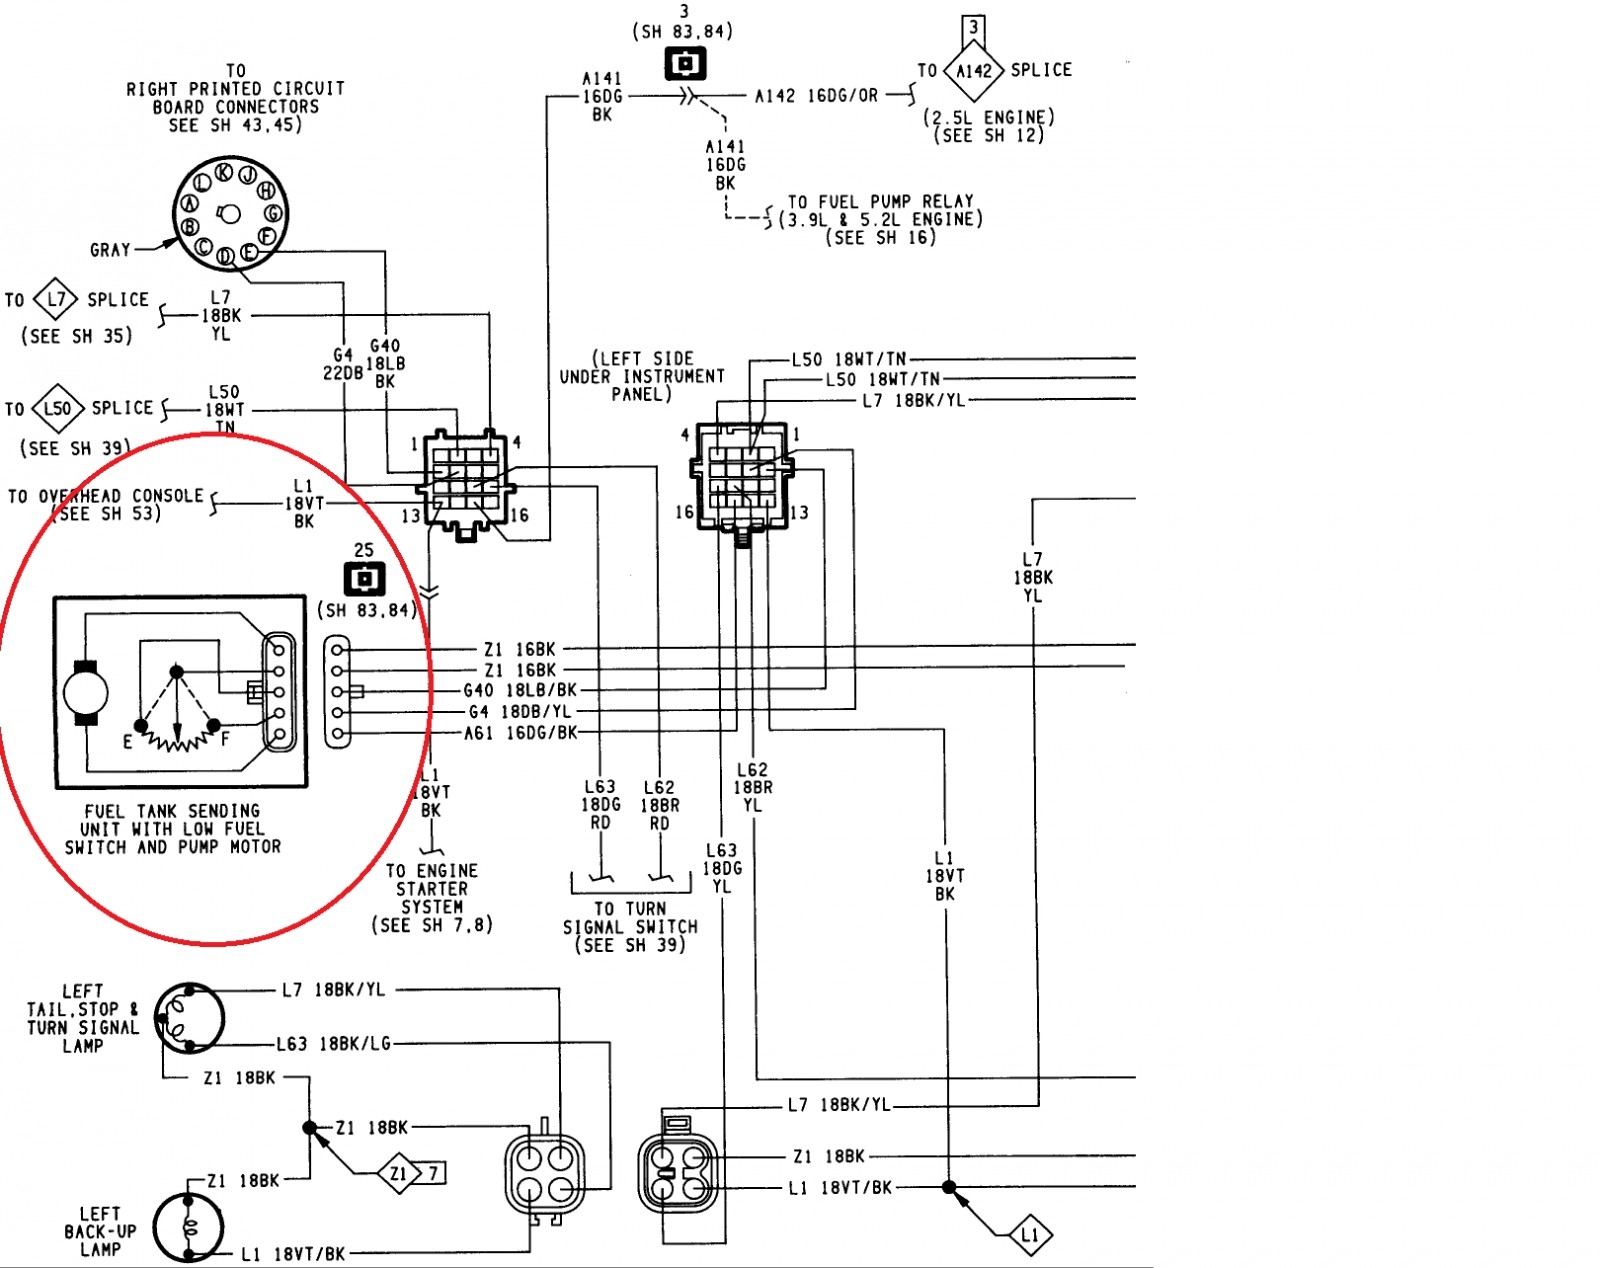 hight resolution of yamaha outboard tachometer wiring diagram dolphin gauges wiring diagram collection yamaha outboard gauges wiring diagram